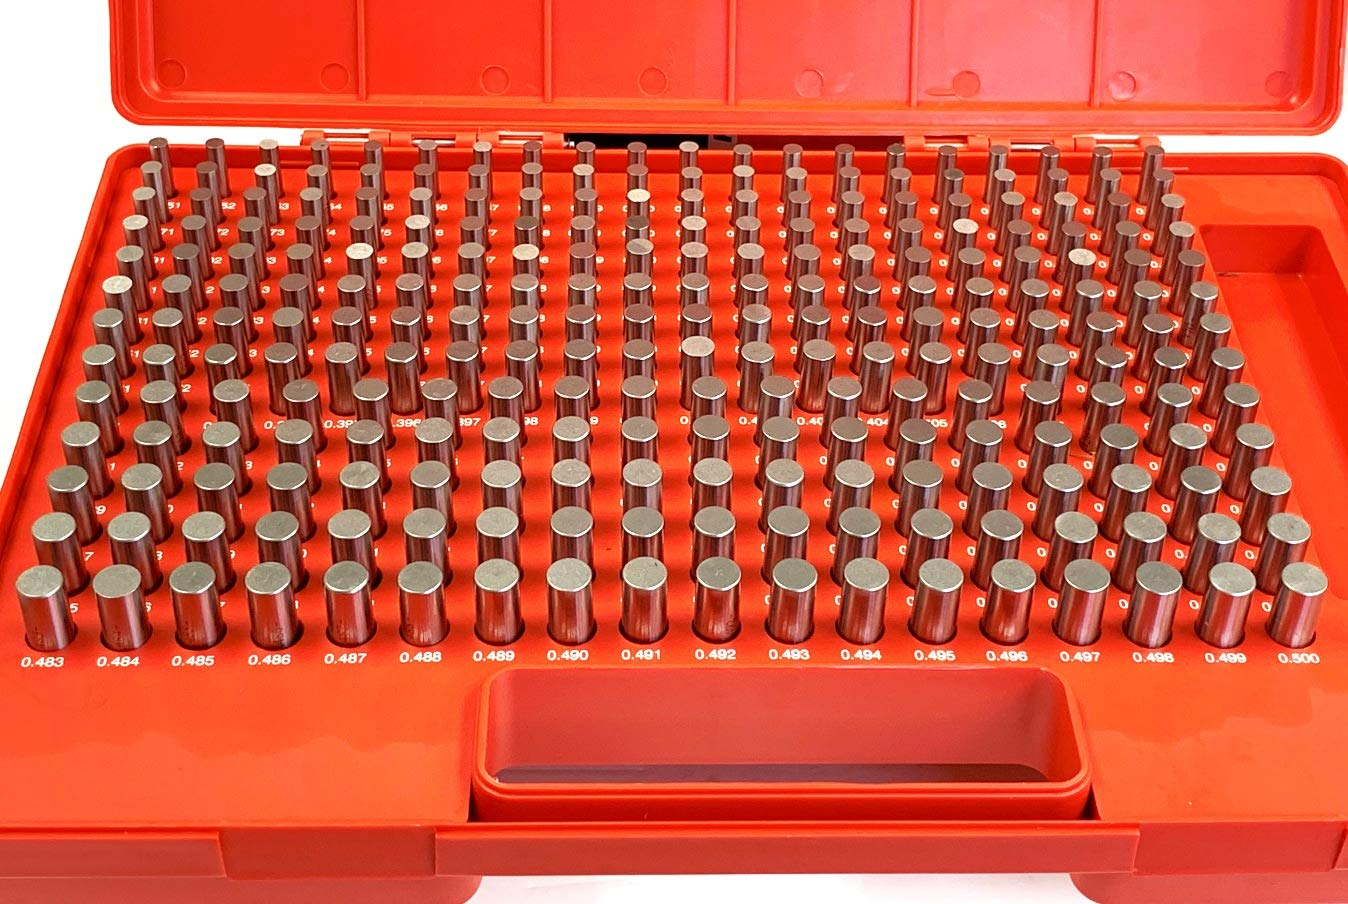 HHIP 4101-0012 New products, world's highest quality popular! M2- Pin Gage Set - 250 Chicago Mall Piece 0.500